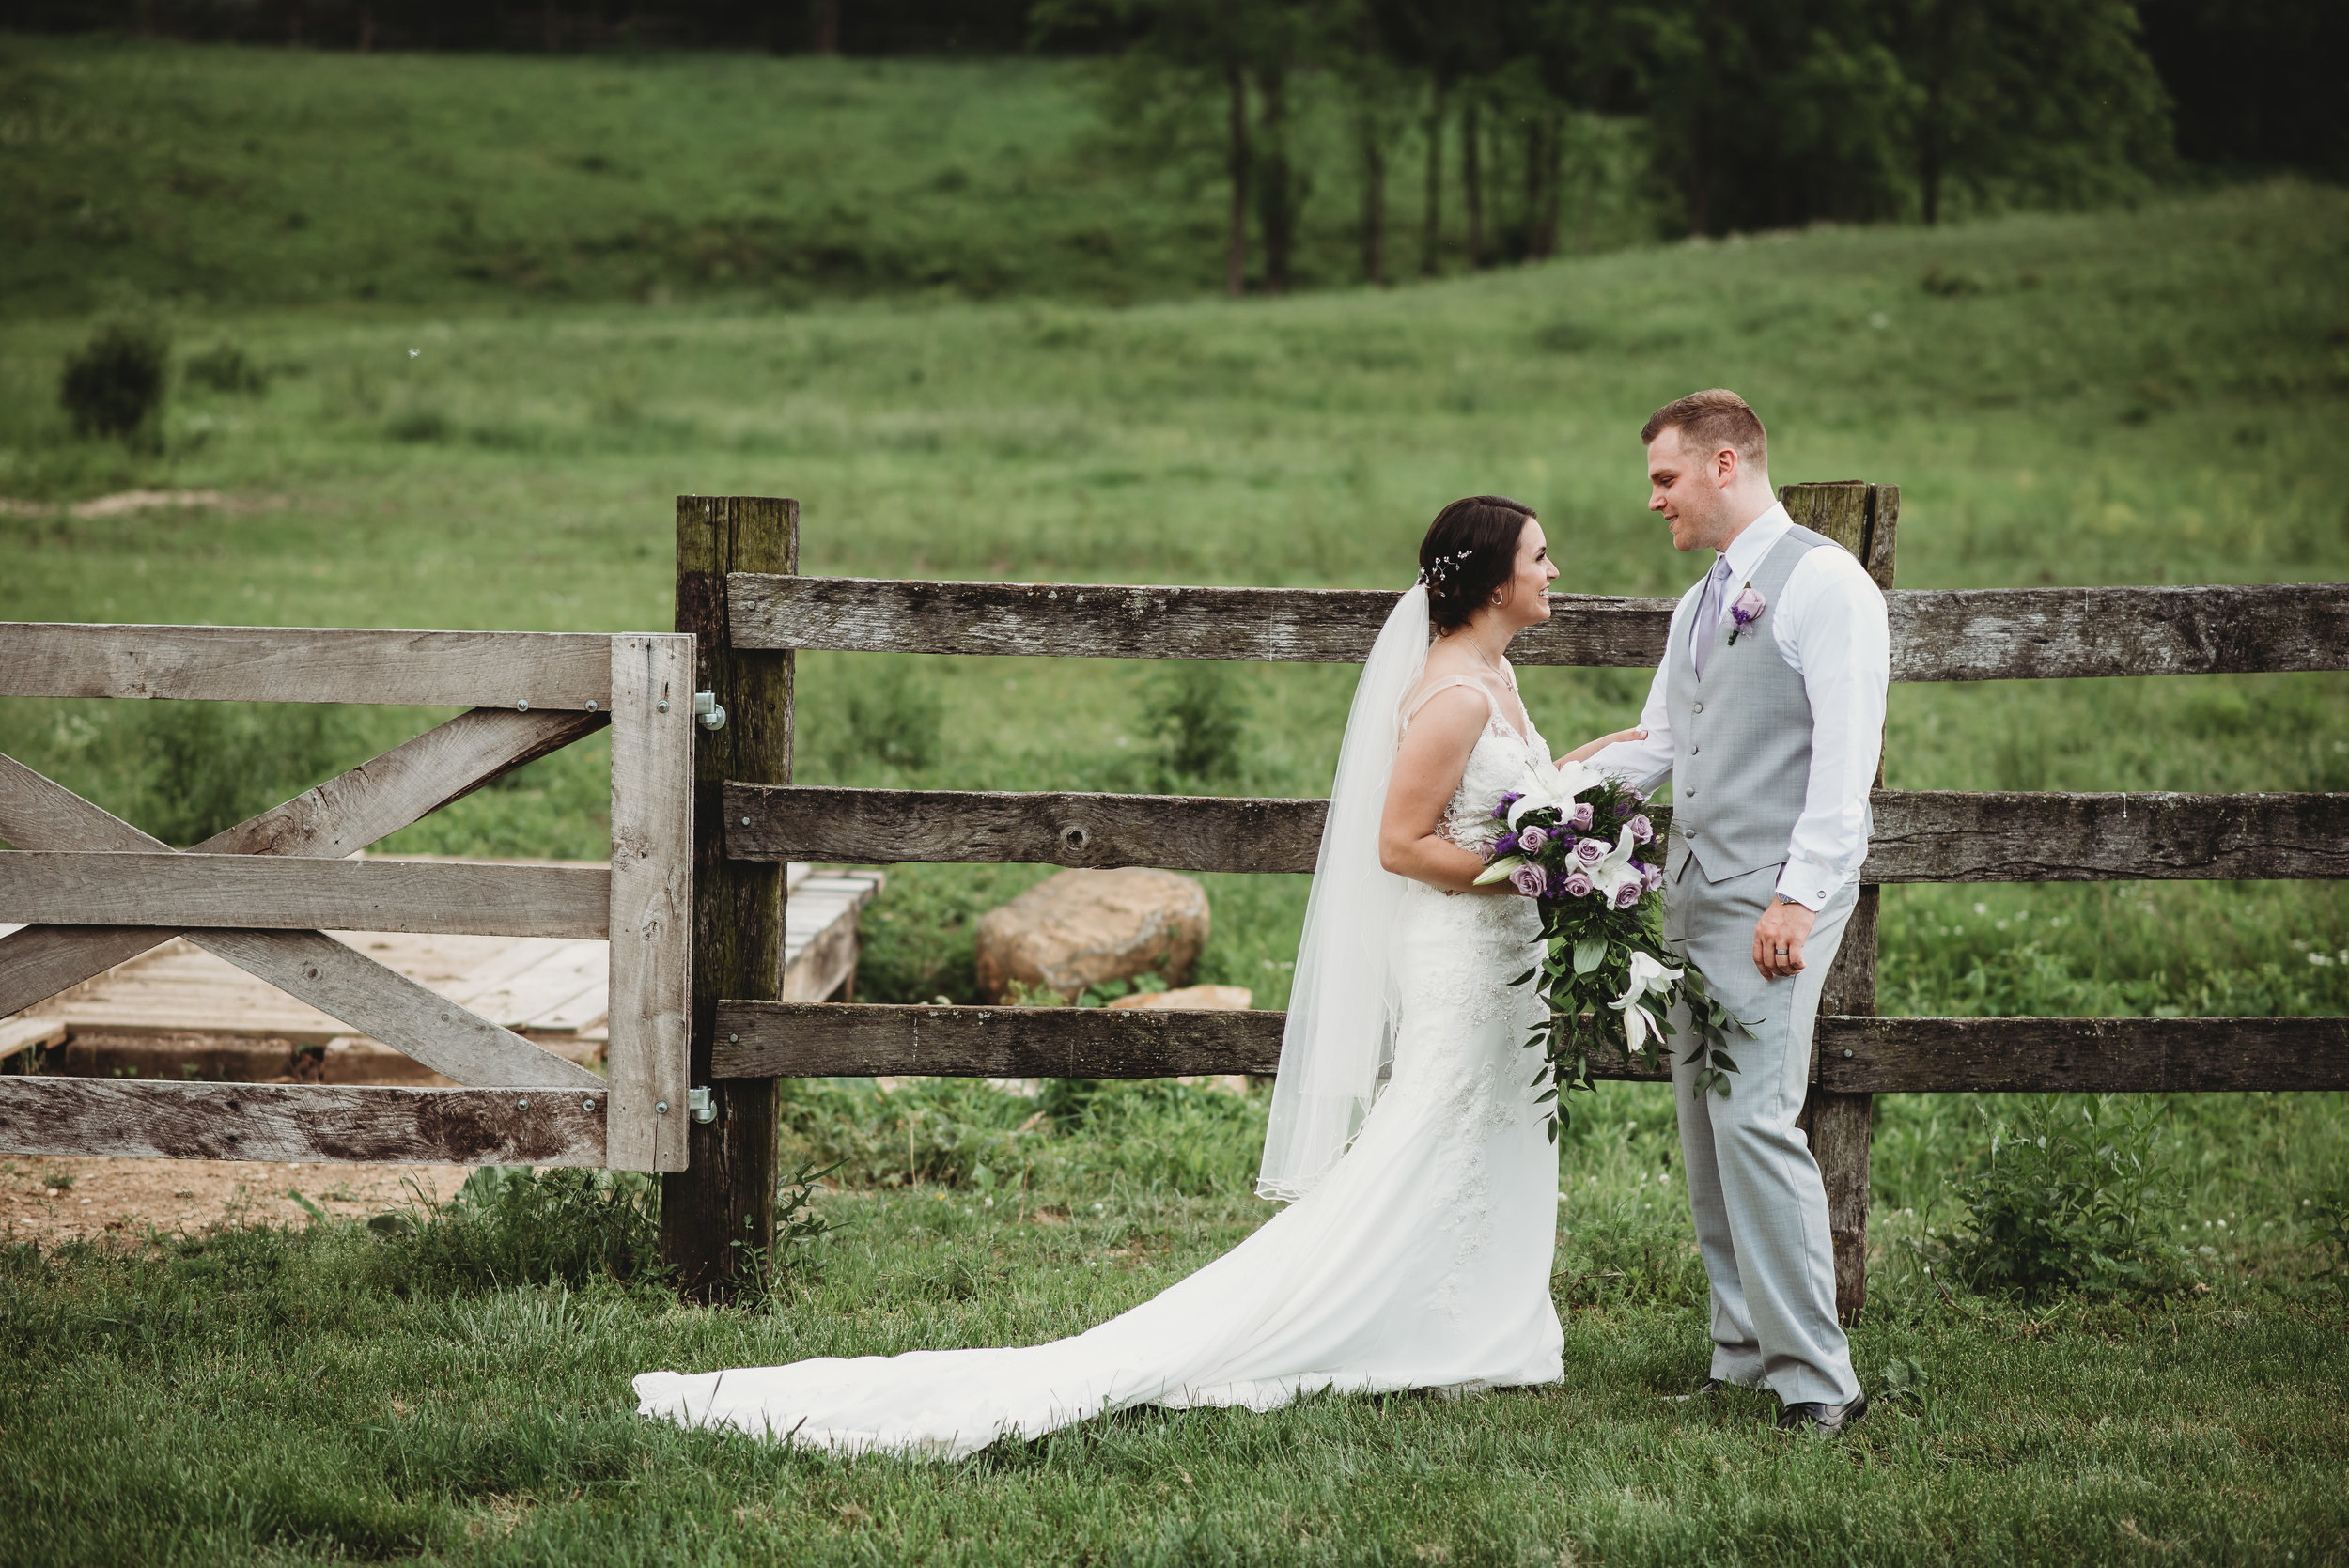 Columbus-Ohio-wedding-photographer-spring-wedding-on-the-farm-2018-423.jpg